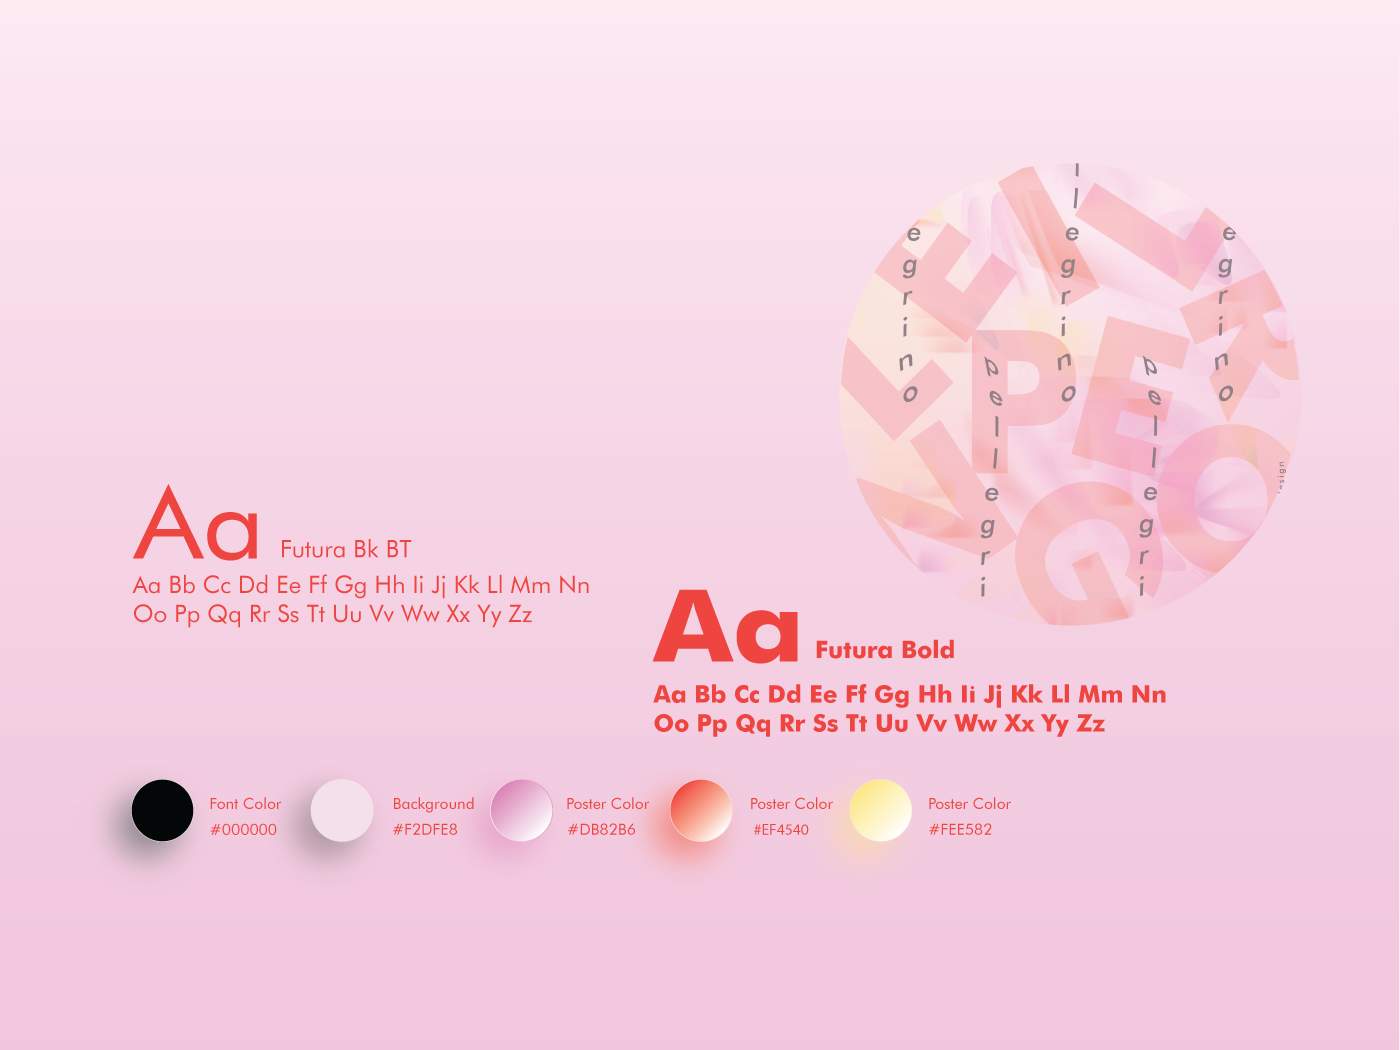 Alphabet Poster Assets Page